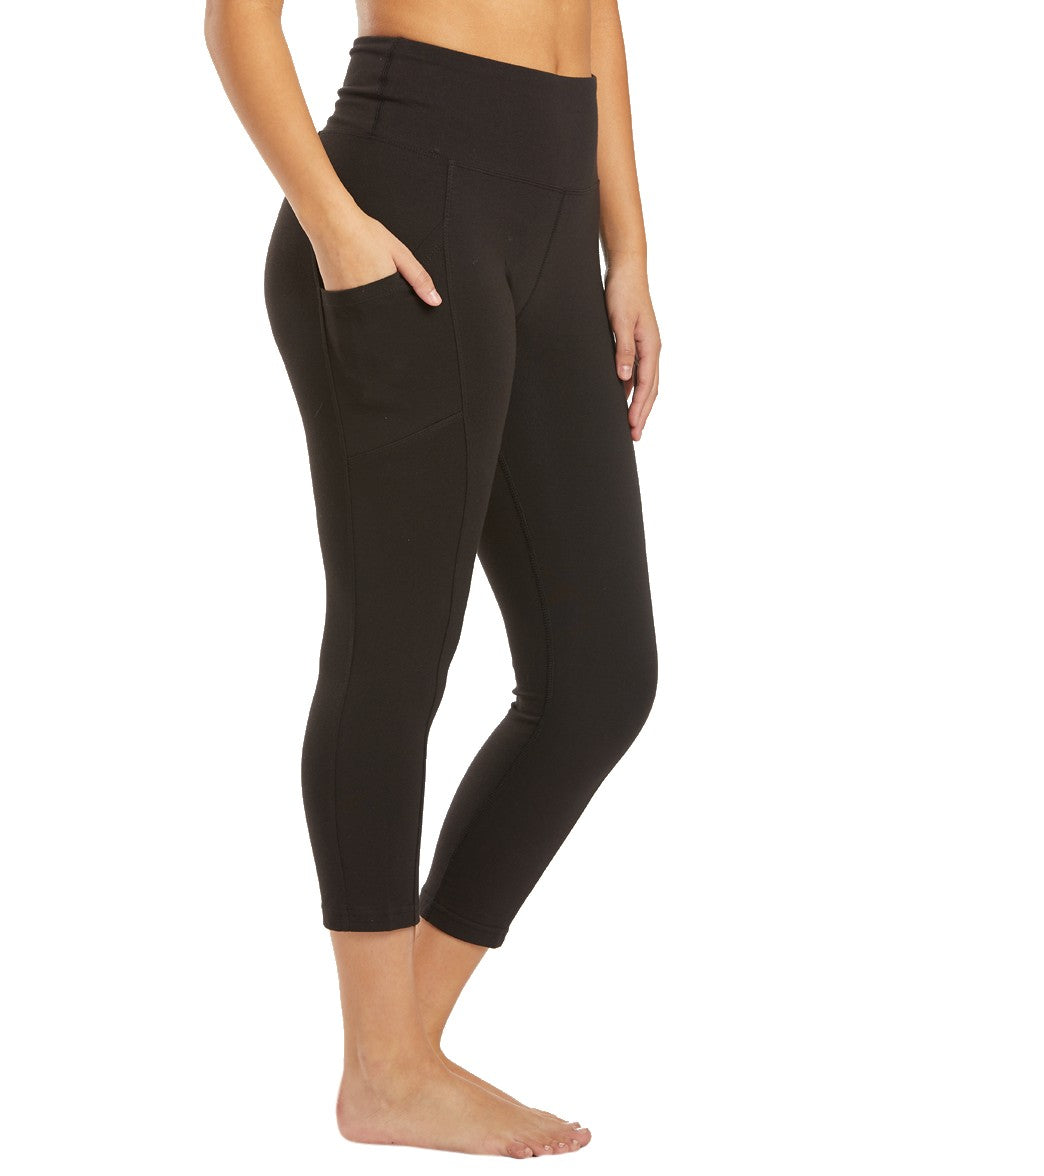 Marika Bailee High Rise Tummy Control Yoga Capri Pants with Pockets - Black Cotton